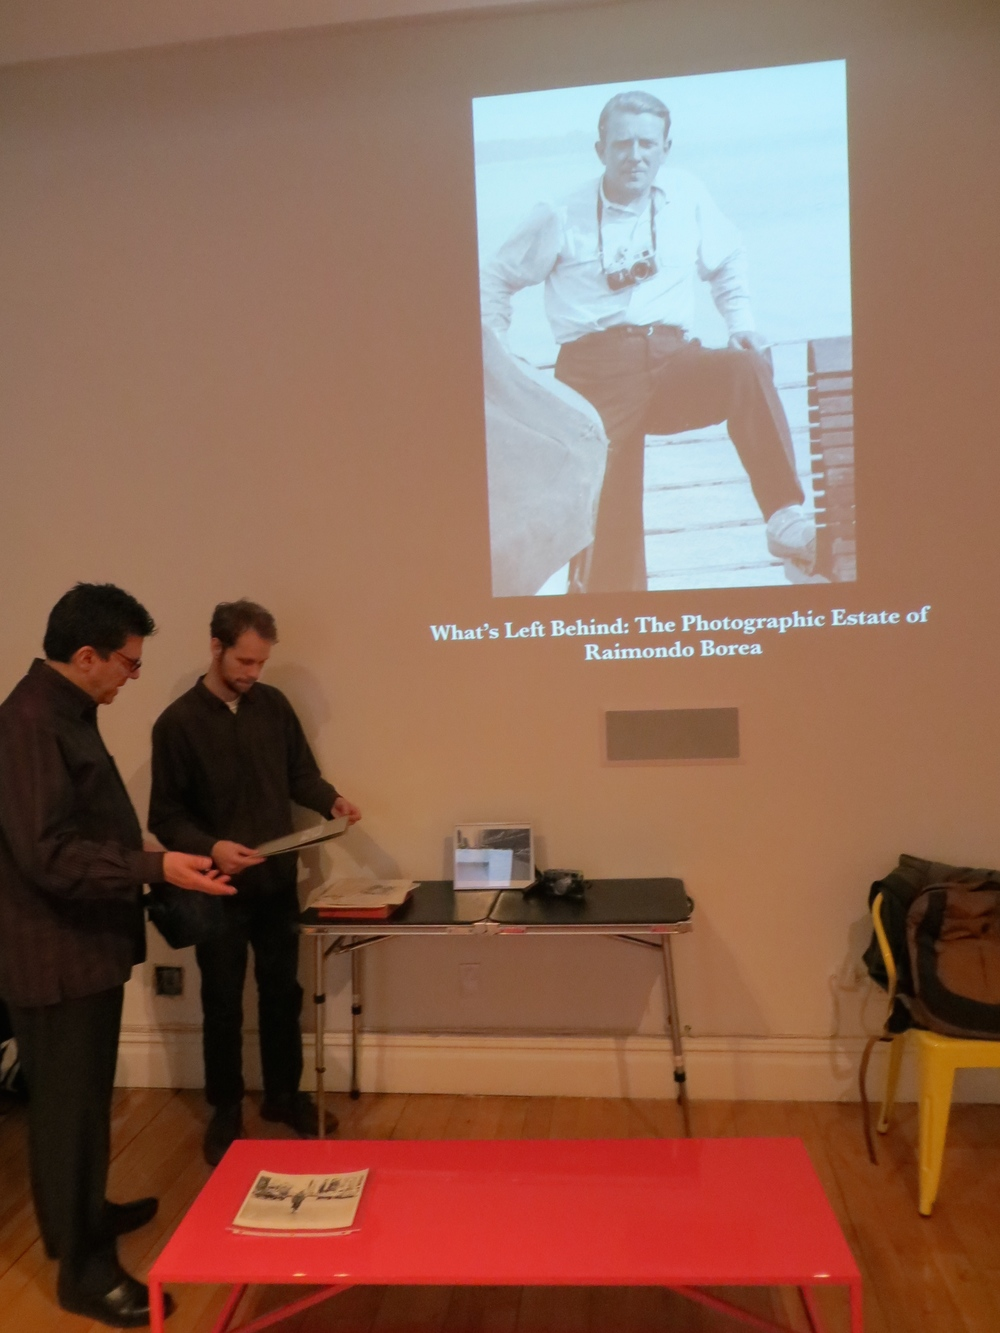 David Deitch and Alex Westhelle handling original photos and documents from the estate of photographer Raimondo Borea.